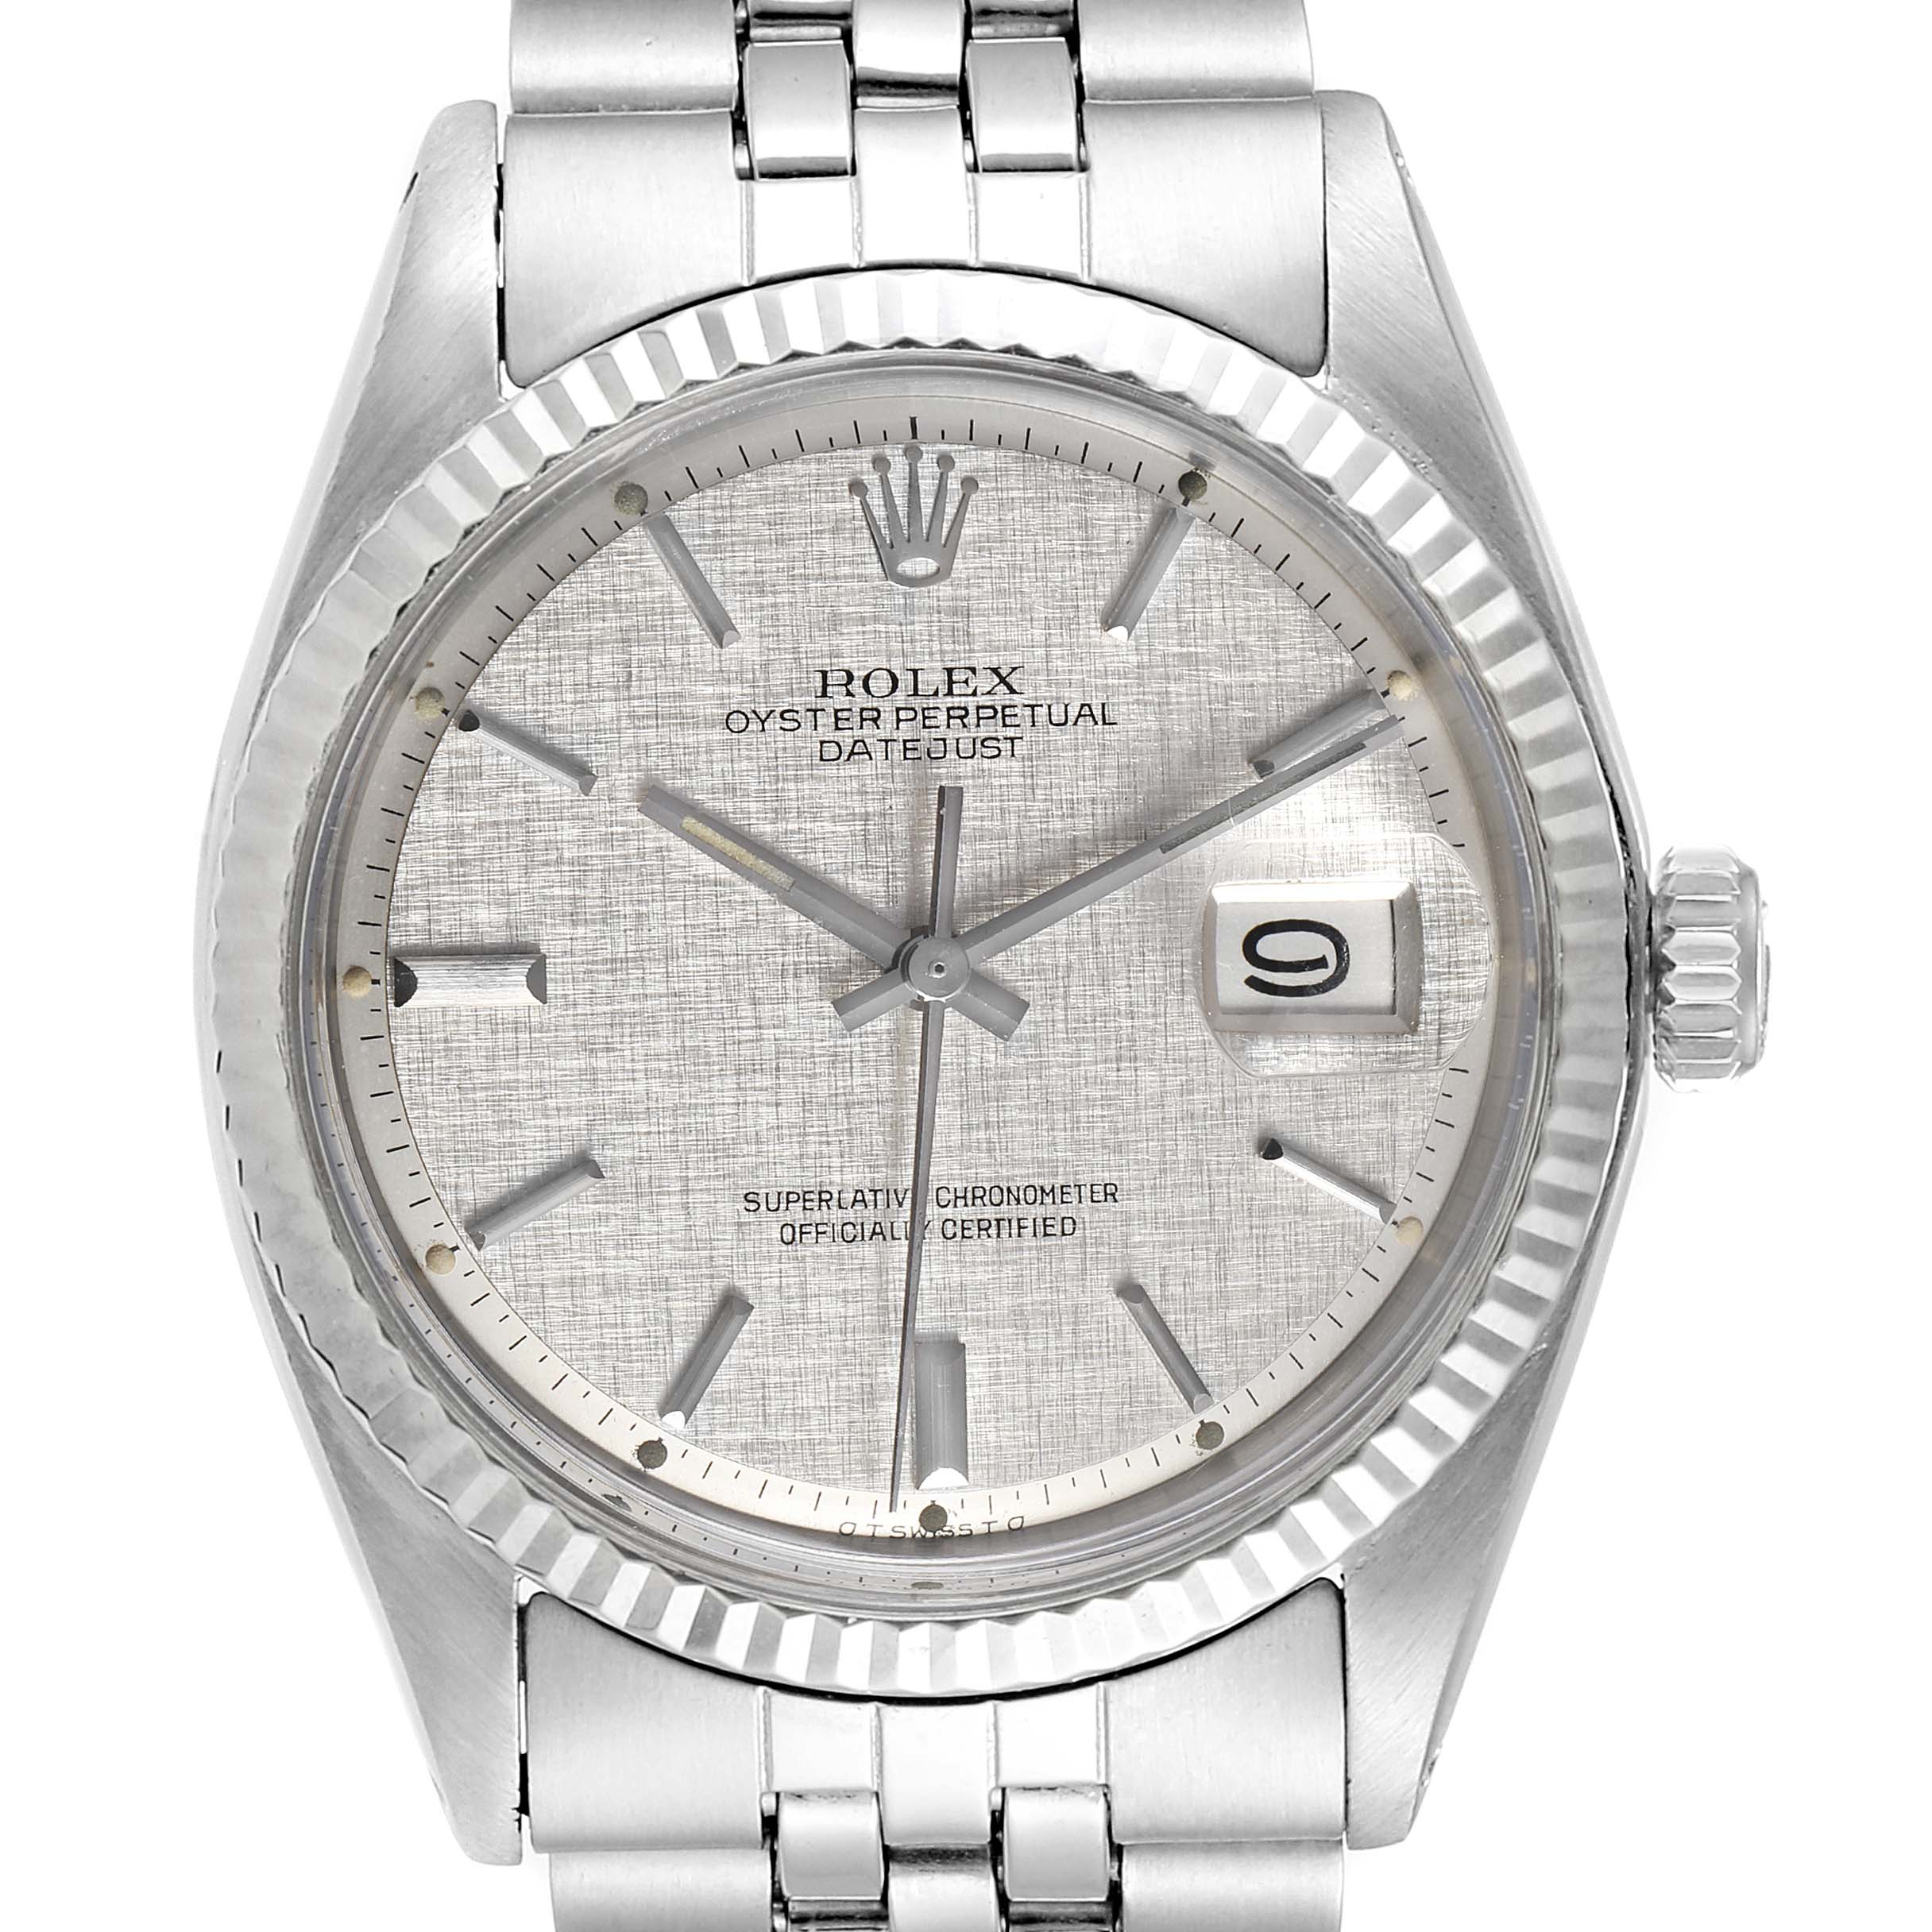 Photo of Rolex Datejust Steel White Gold Linen Dial Vintage Watch 1601 Box Papers